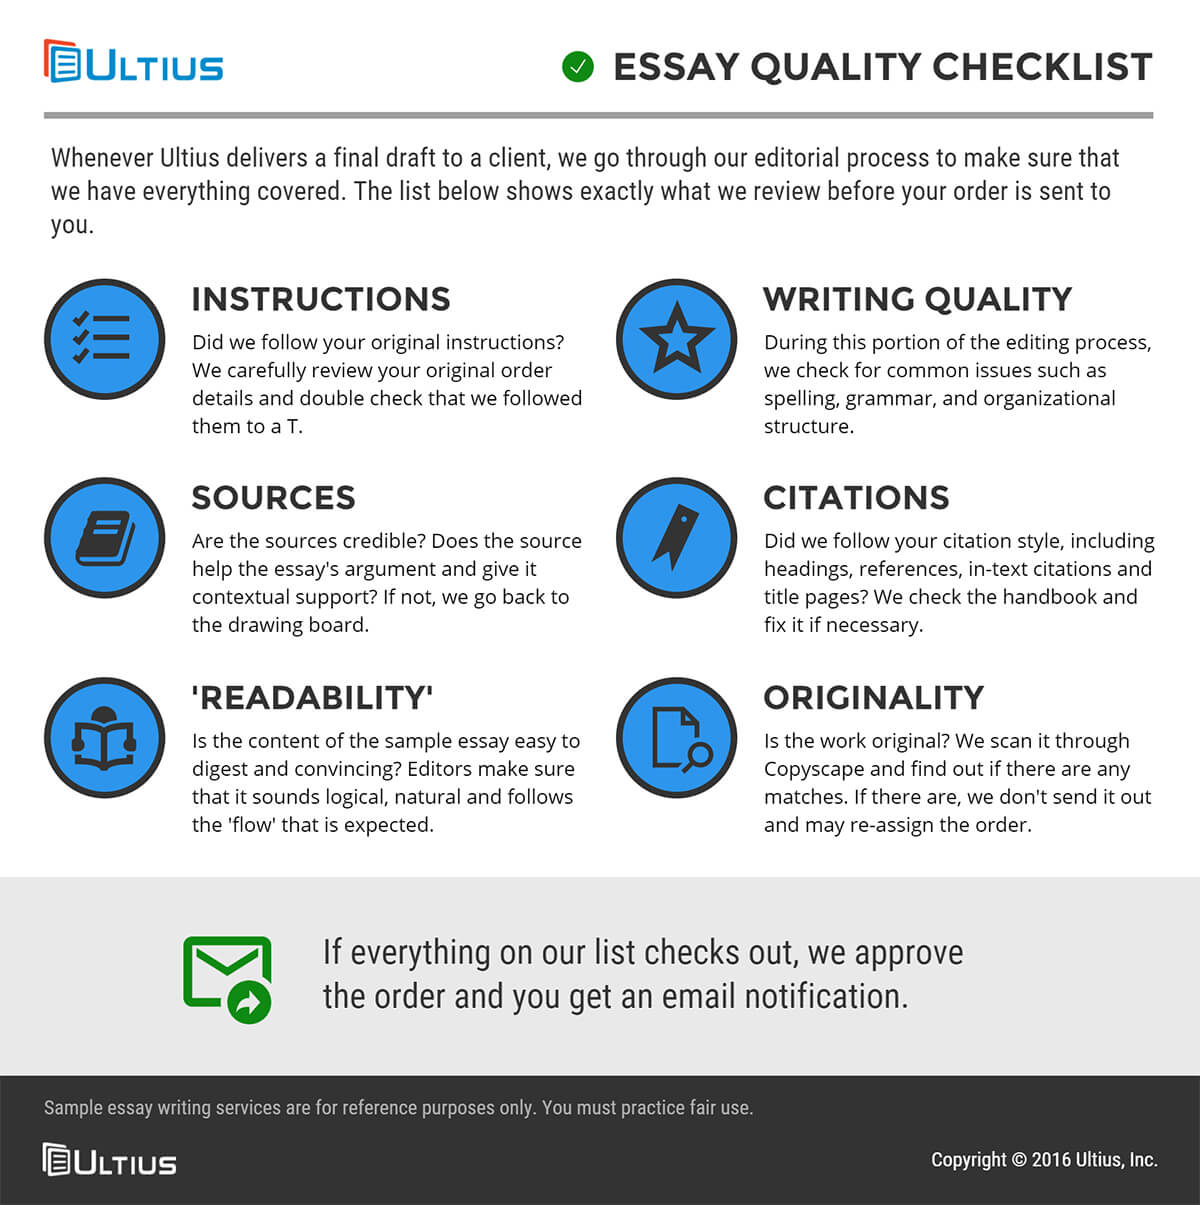 Sample Essay High School Essay Writing Services  Quality Checklist Infographic Healthy Eating Essays also Proposal Essay Example Essay Writing Service  Custom Writing Service  Ultius Science And Technology Essay Topics